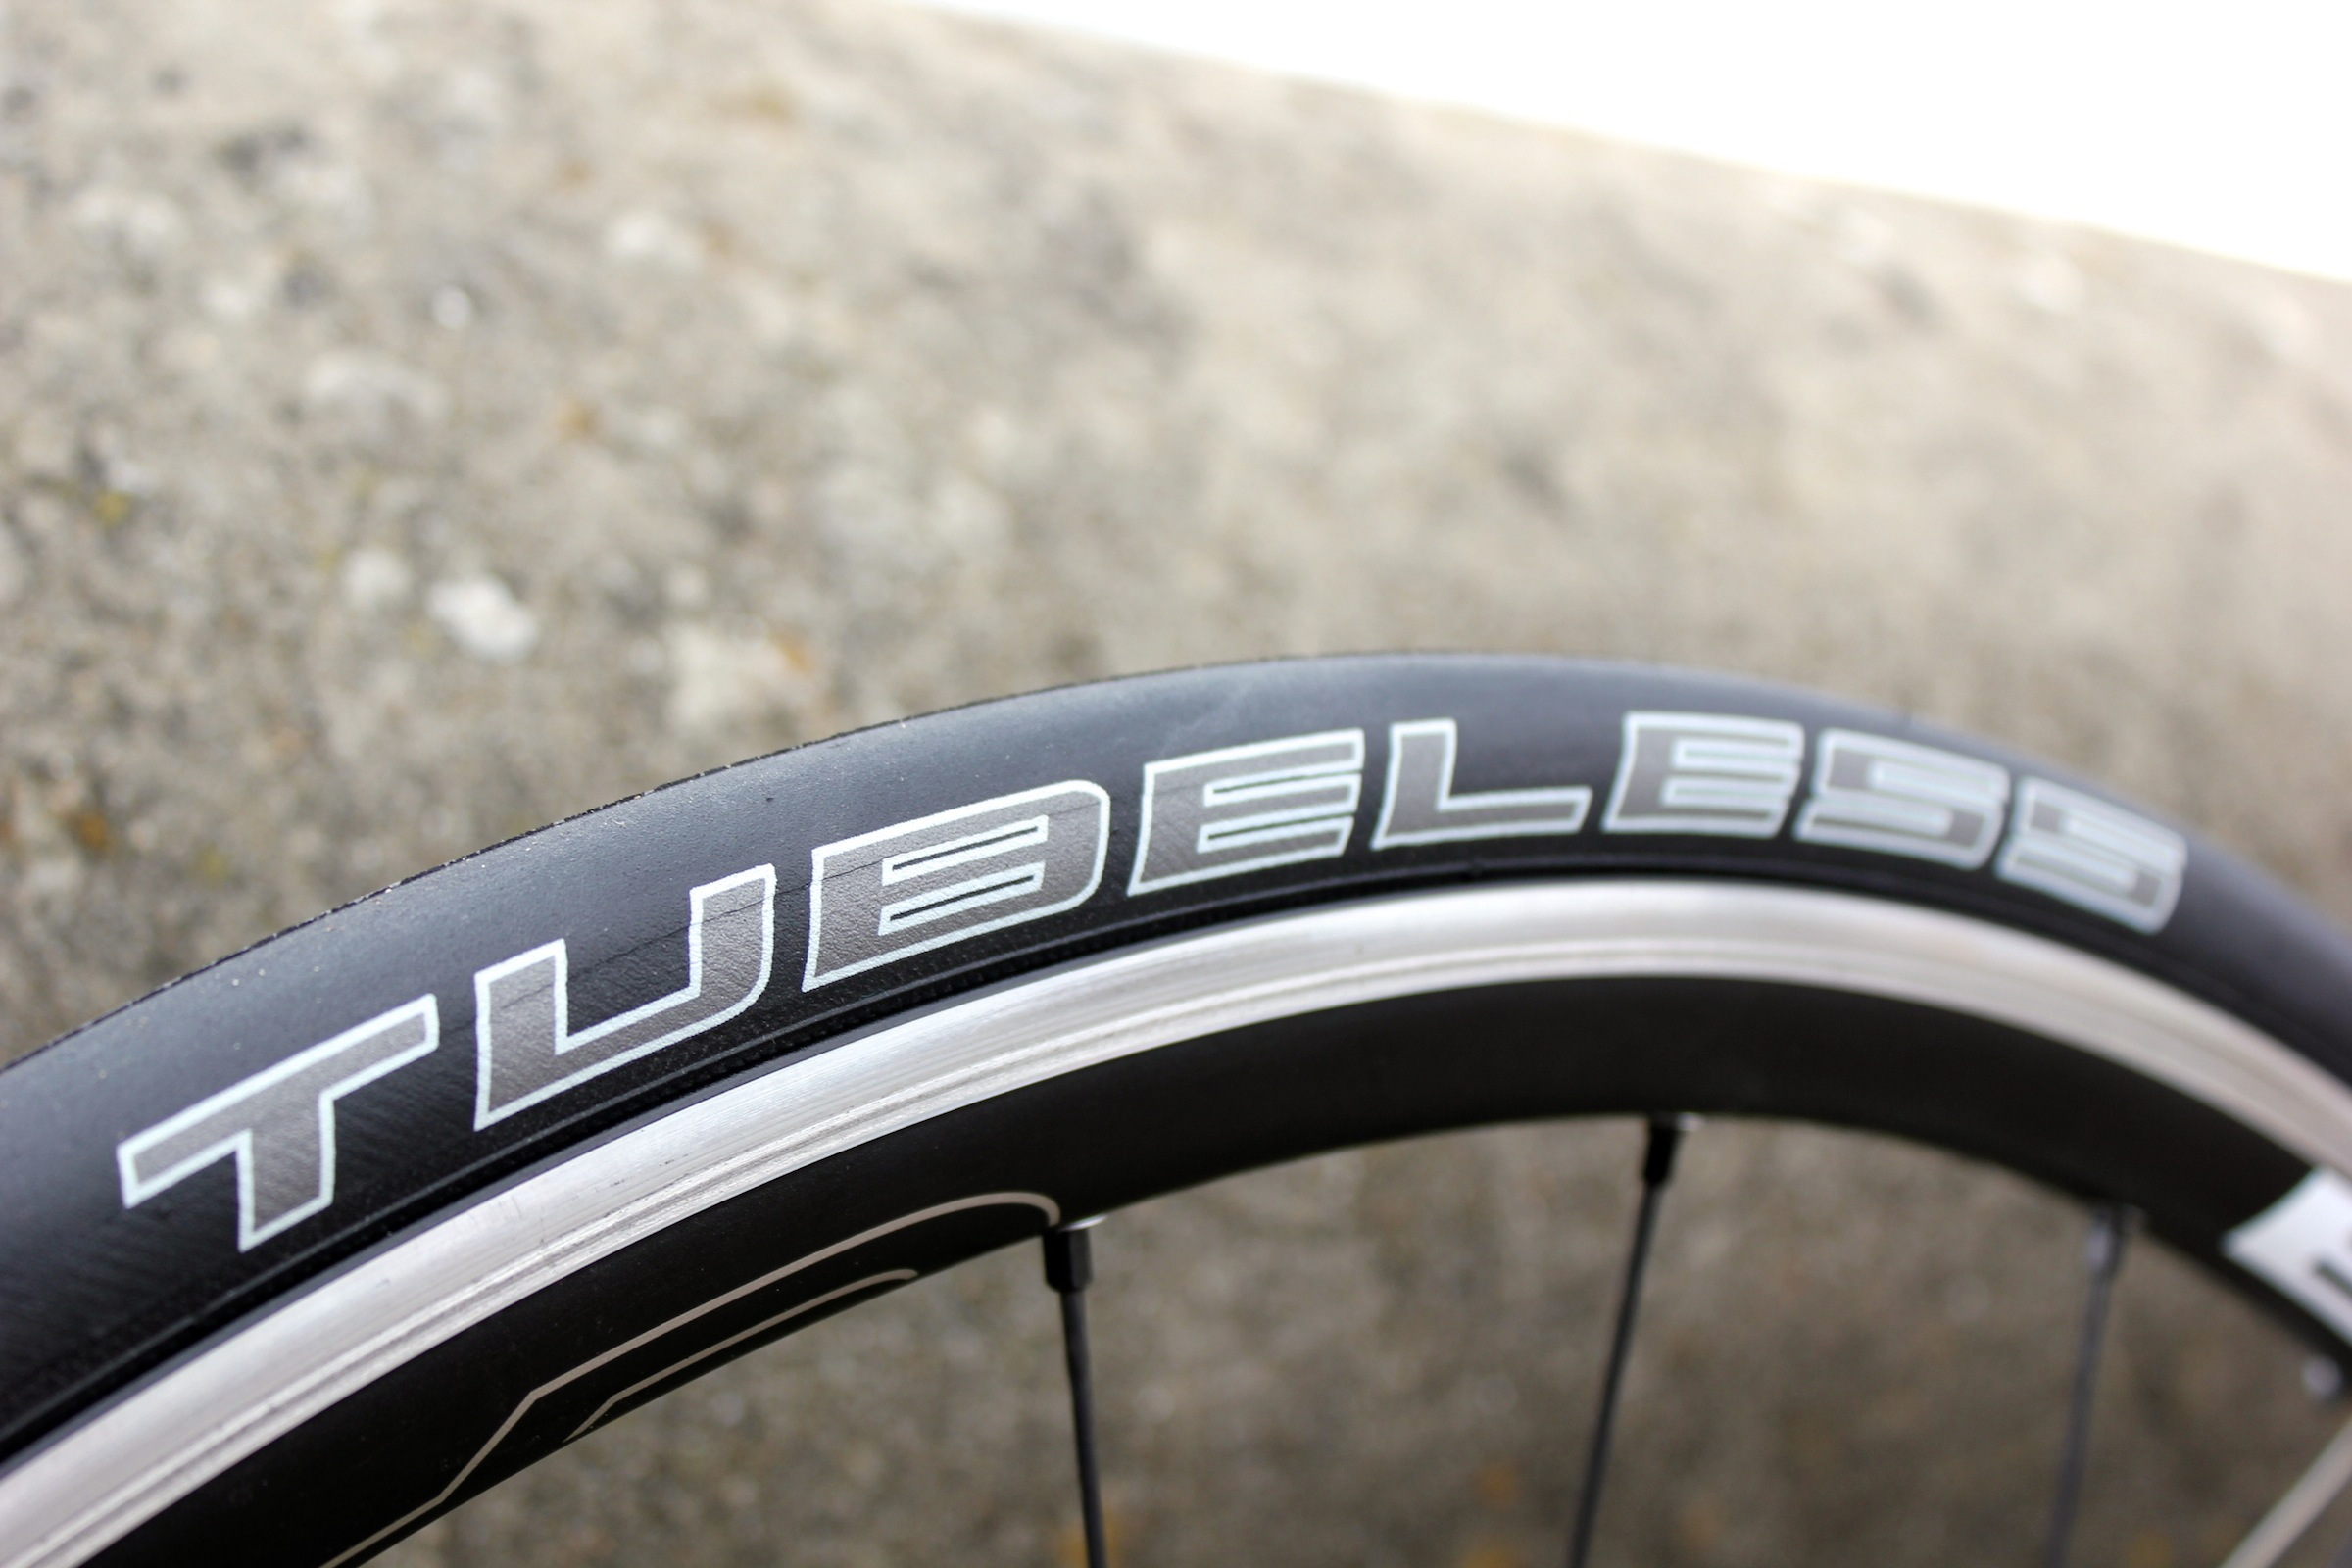 Schwalbe Ultremo ZX tubeless, logo, pic: Timothy John, ©Factory Media